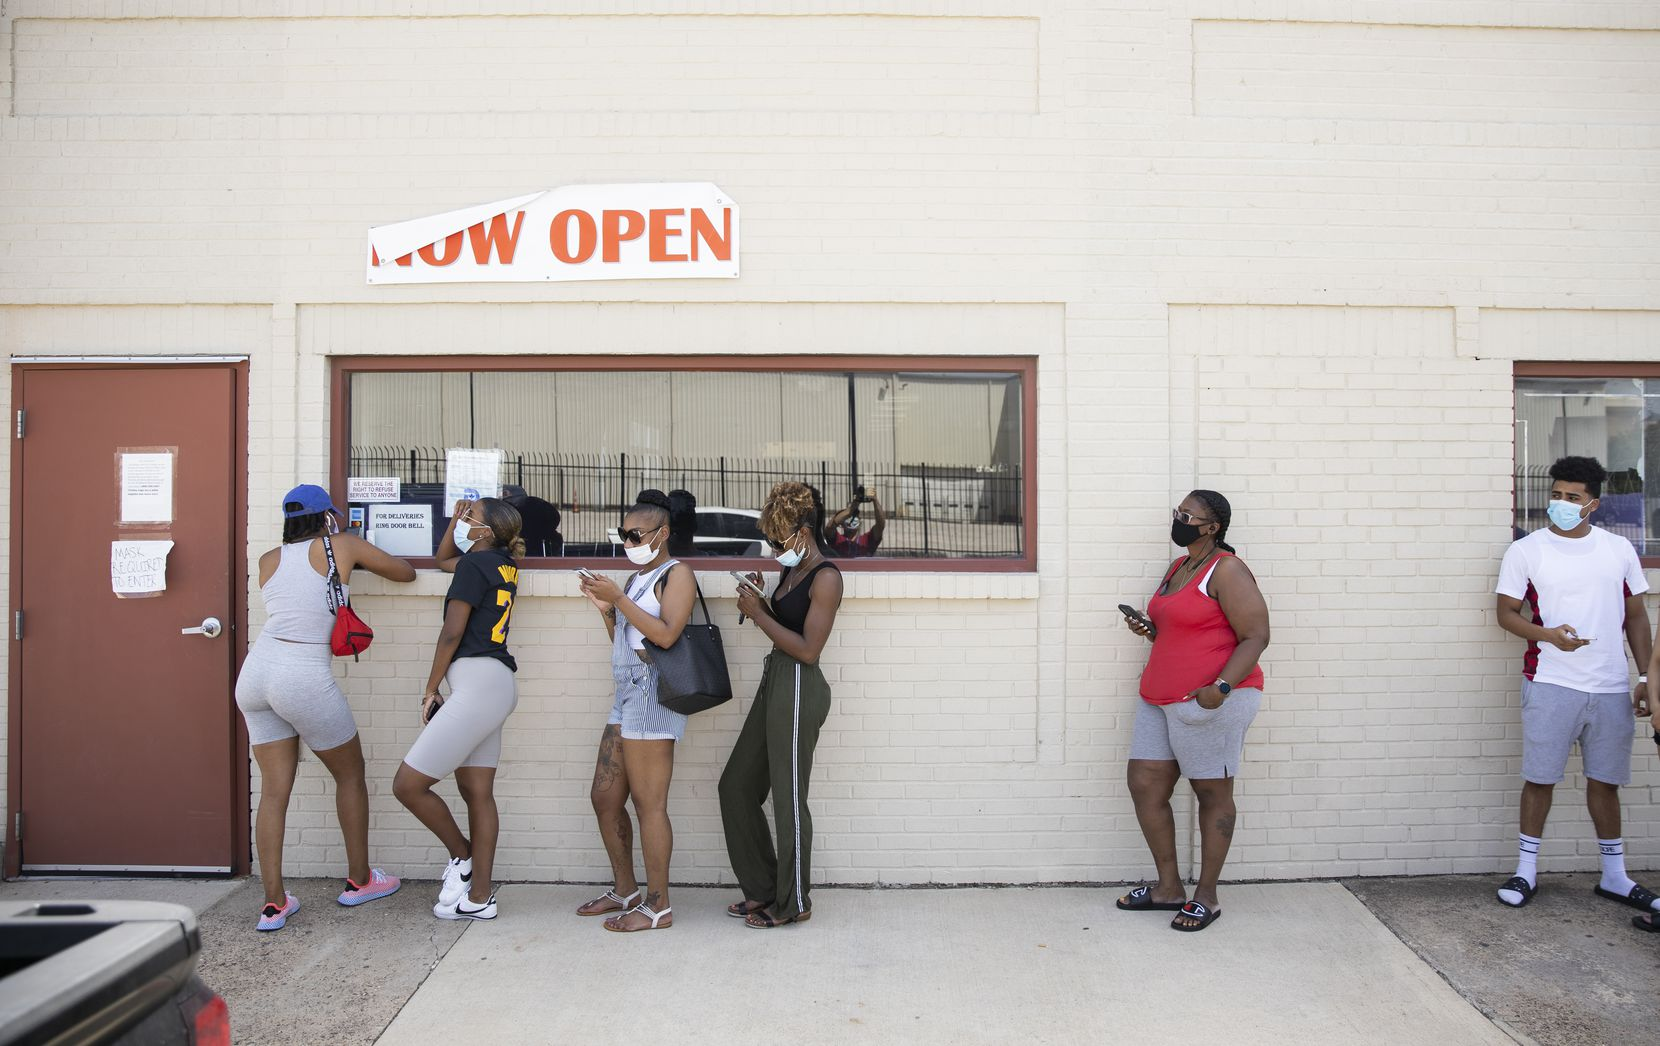 Customers wait in line to order food at Turkey Leg Paradise.